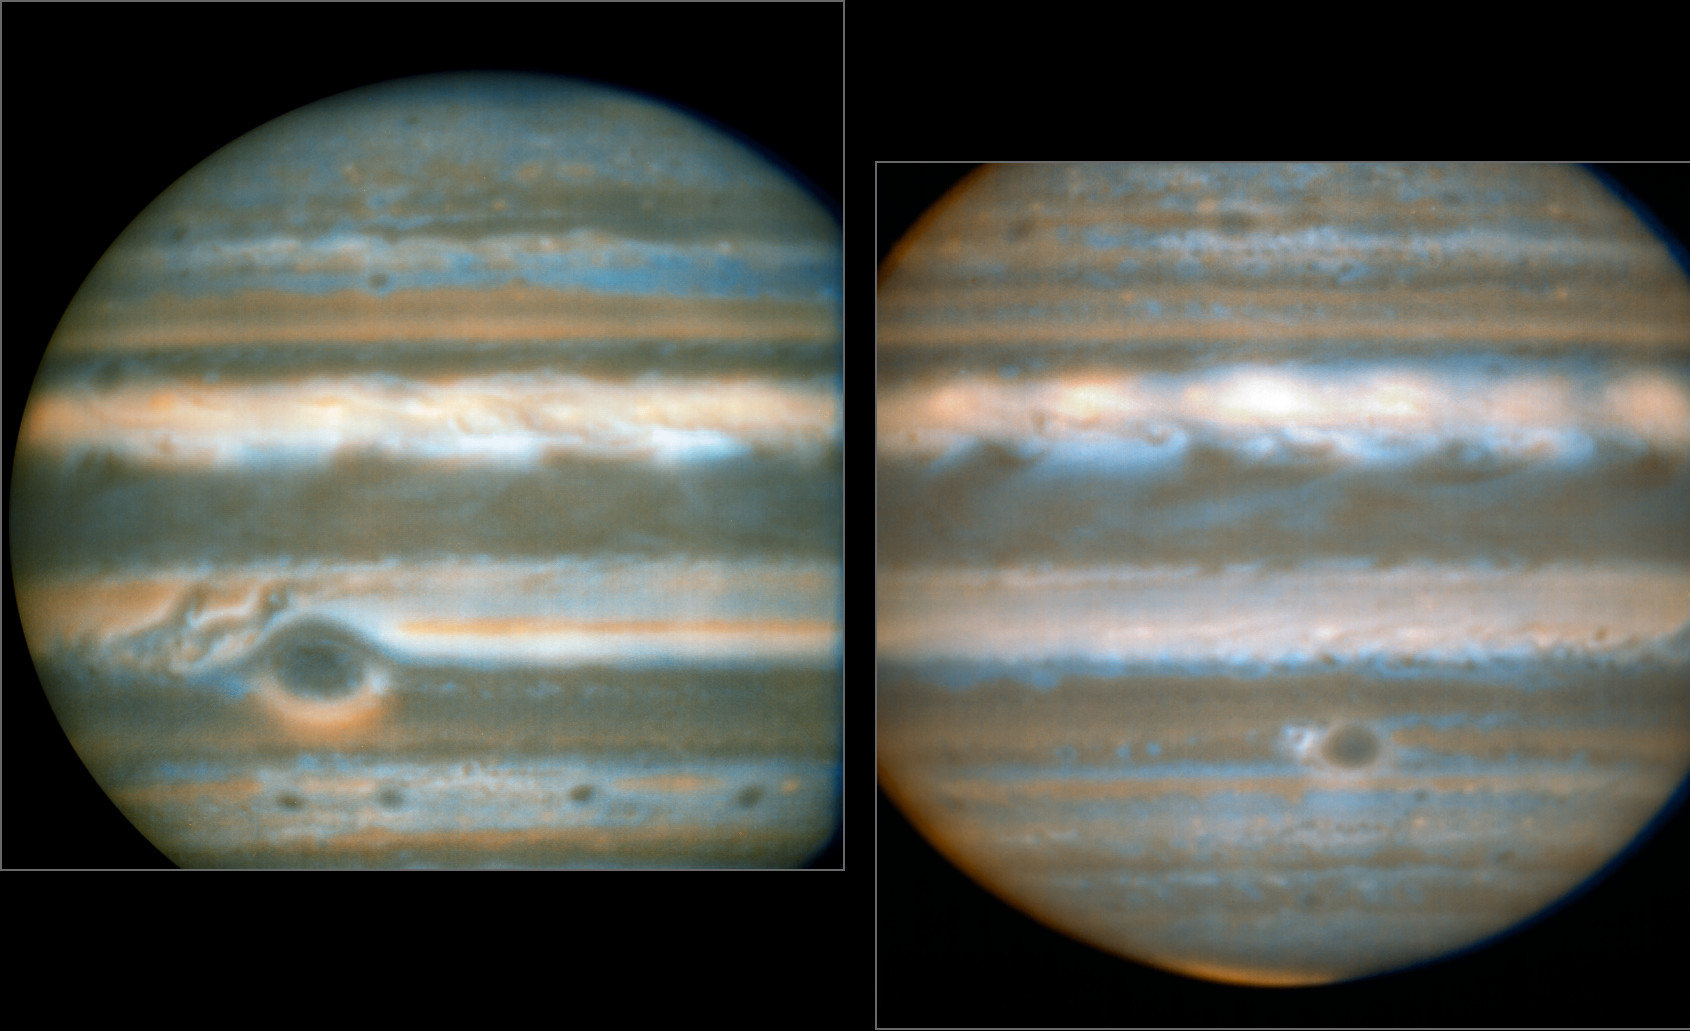 False colour images generated from VLT observations in February 2016 (left) and March 2016 (right), showing two different faces of Jupiter. The bluer areas are cold and cloud-free, the orangey areas are warm and cloudy, more colourless bright regions are warm and cloud-free, and dark regions are cold and cloudy (such as the Great Red Spot and the prominent ovals). The wave pattern over the North Equatorial Band shows up in orange. These views were created from VLT/VISIR infrared images. The orange images were obtained at 10.7 micrometres wavelength and highlight the different temperatures and presence of ammonia. The blue images at 8.6 micrometres highlight variations in cloud opacity. Image credit: ESO/L. Fletcher.